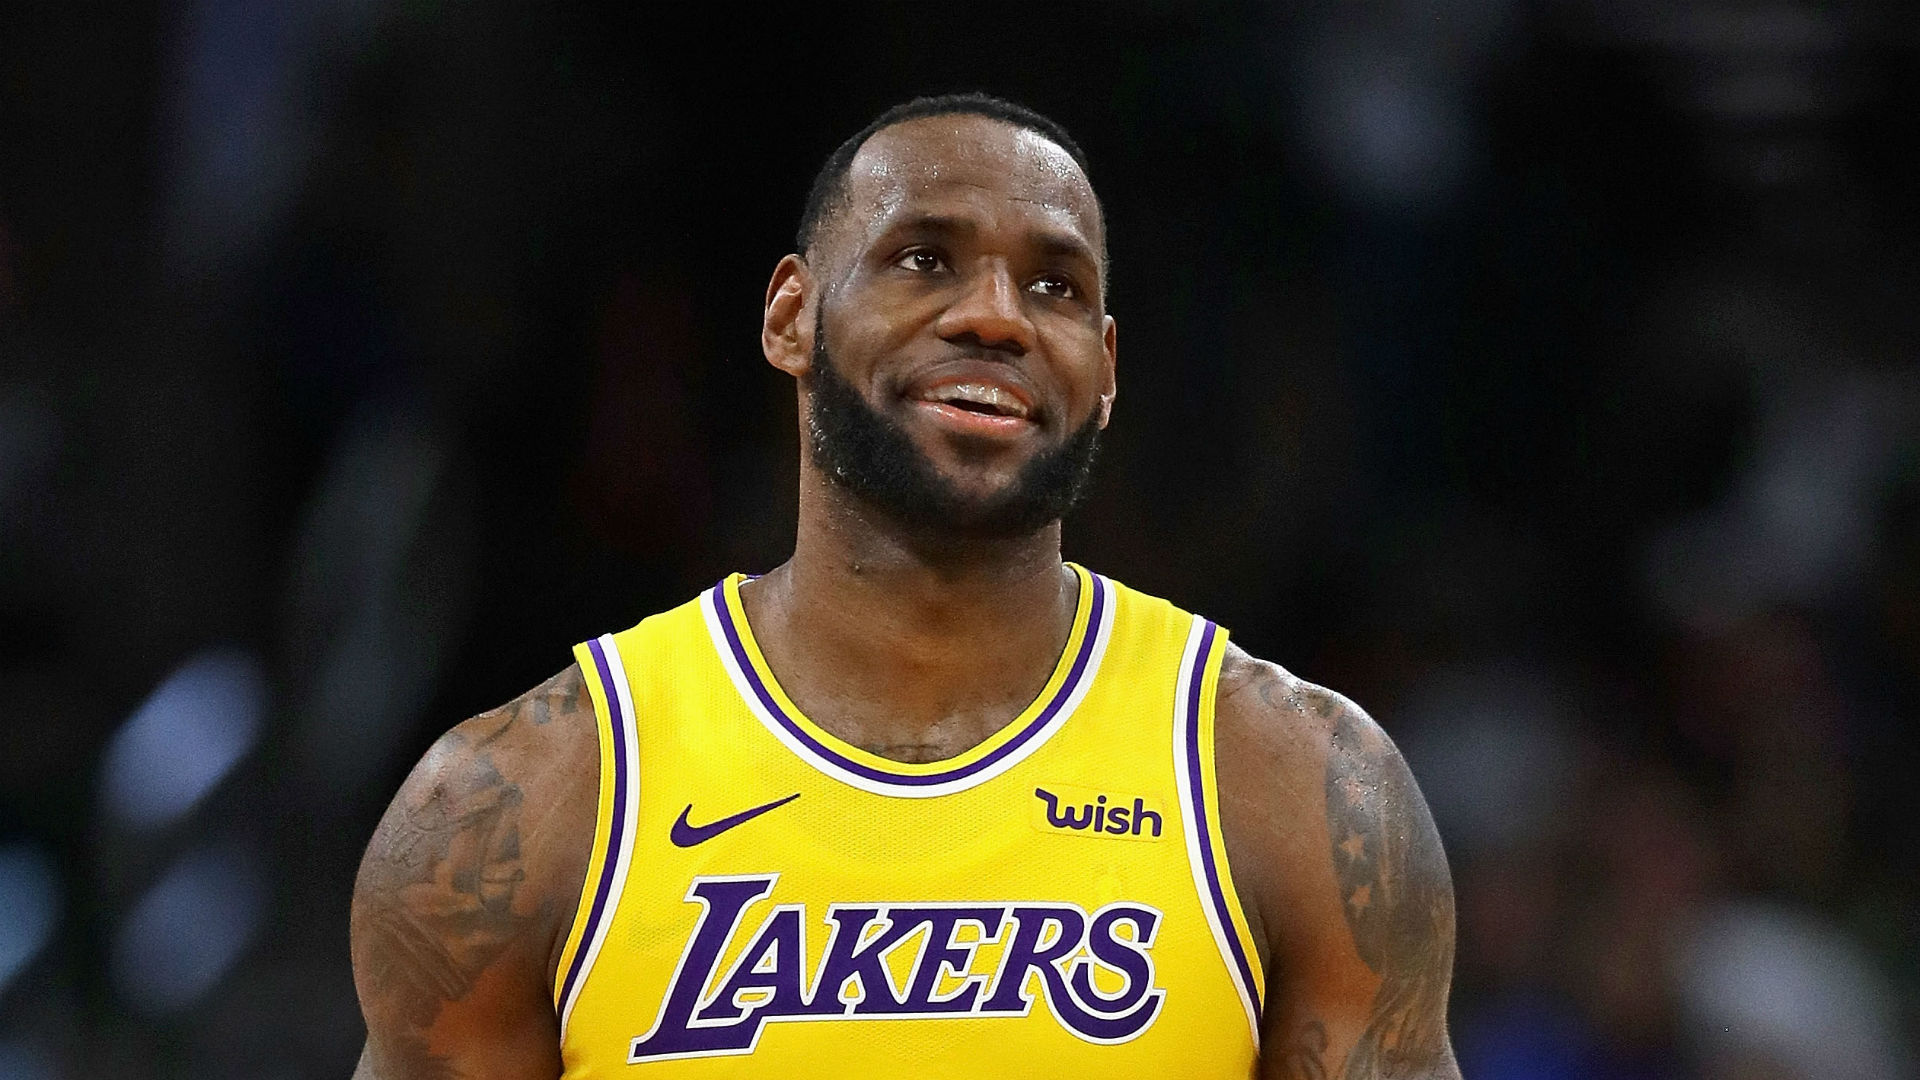 Jayson Tatum defends LeBron James after Lakers star faced criticism for celebrating son's dunks